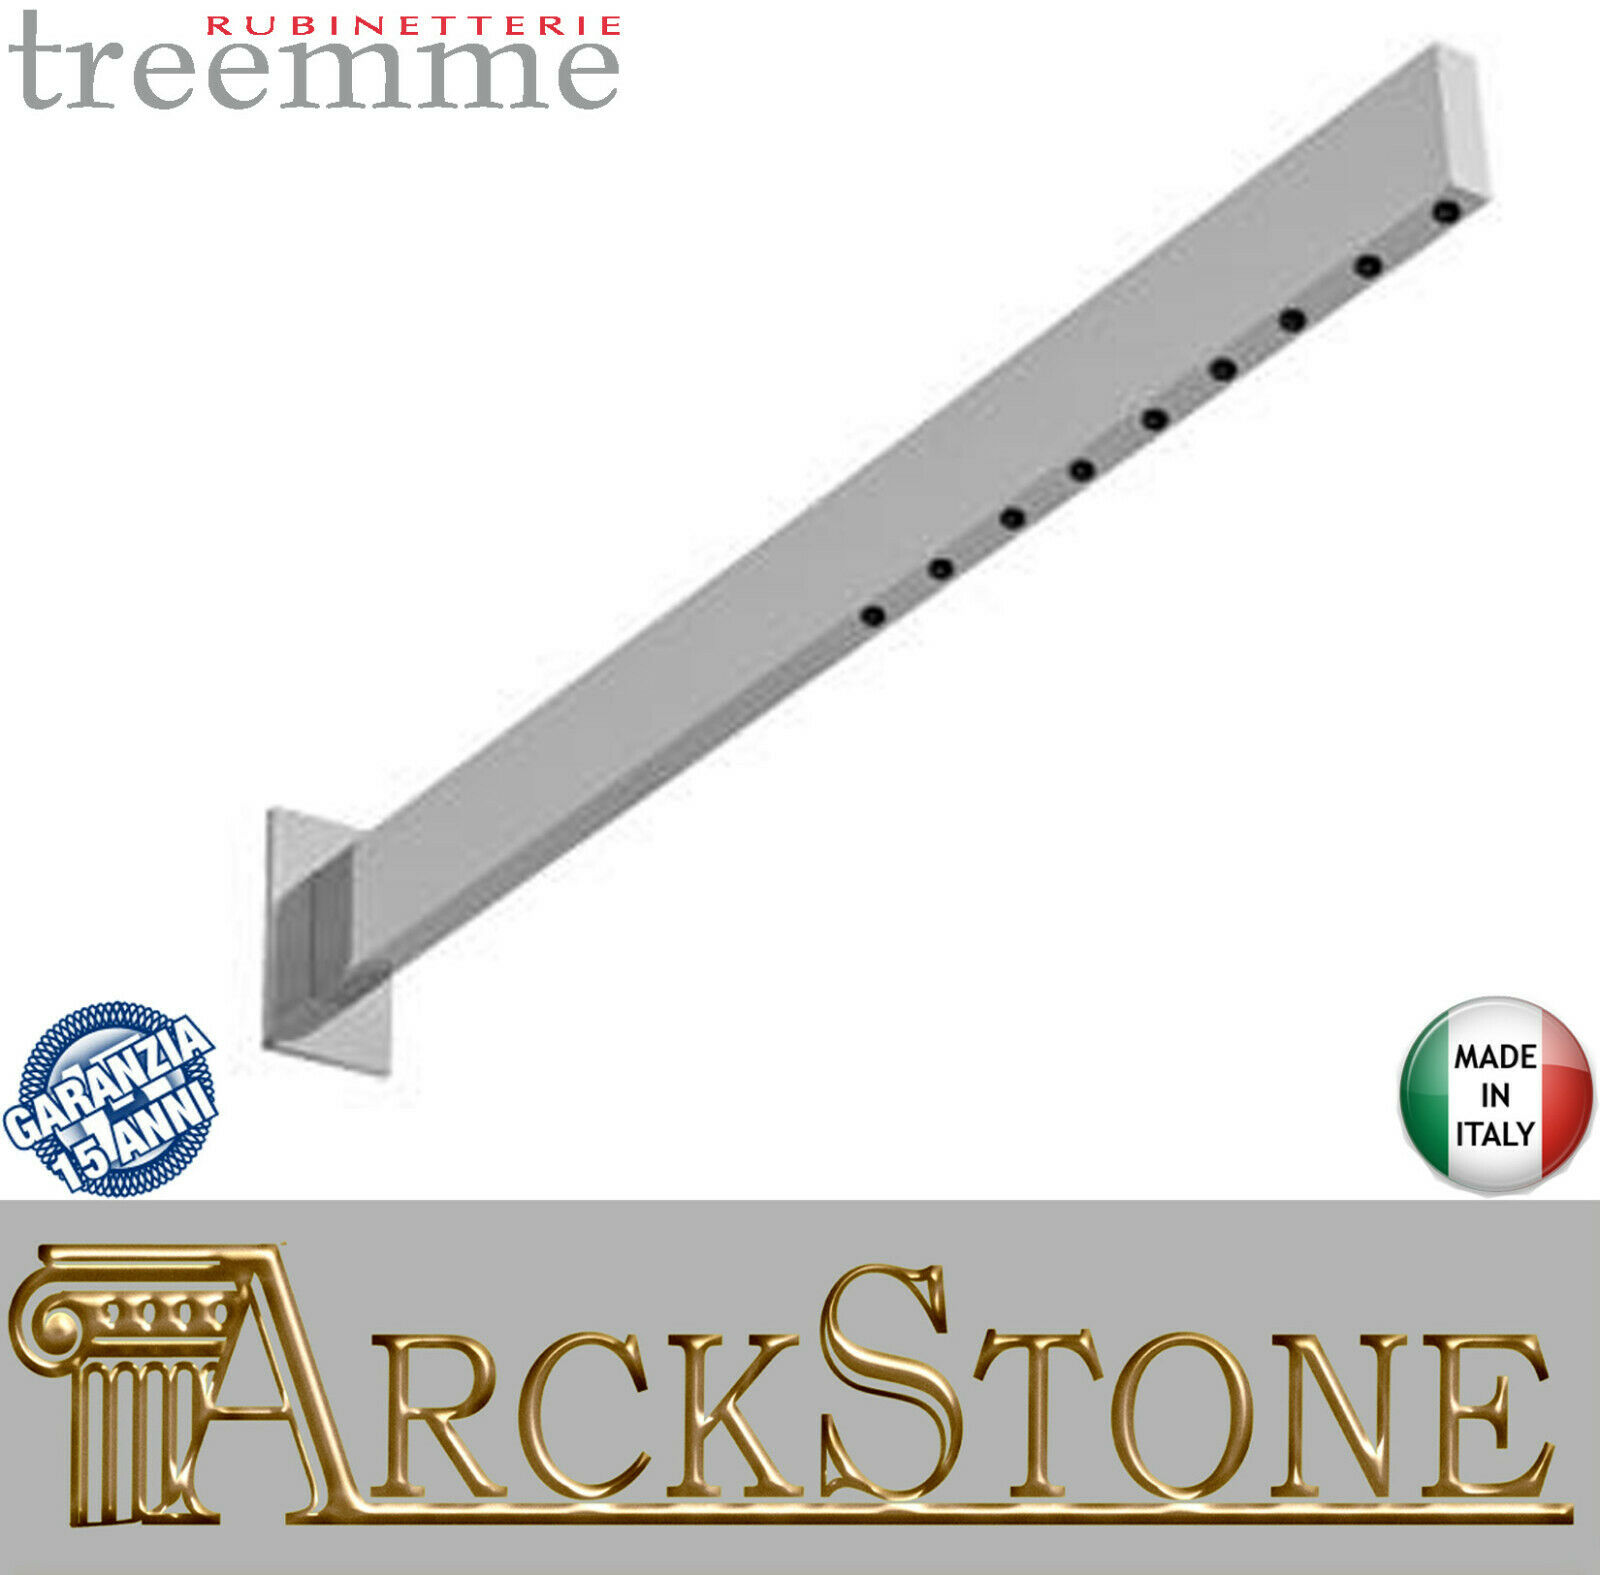 Elemento Per Soffione Con Areatore Rubinetterie Treemme Time - Time_out Metallo